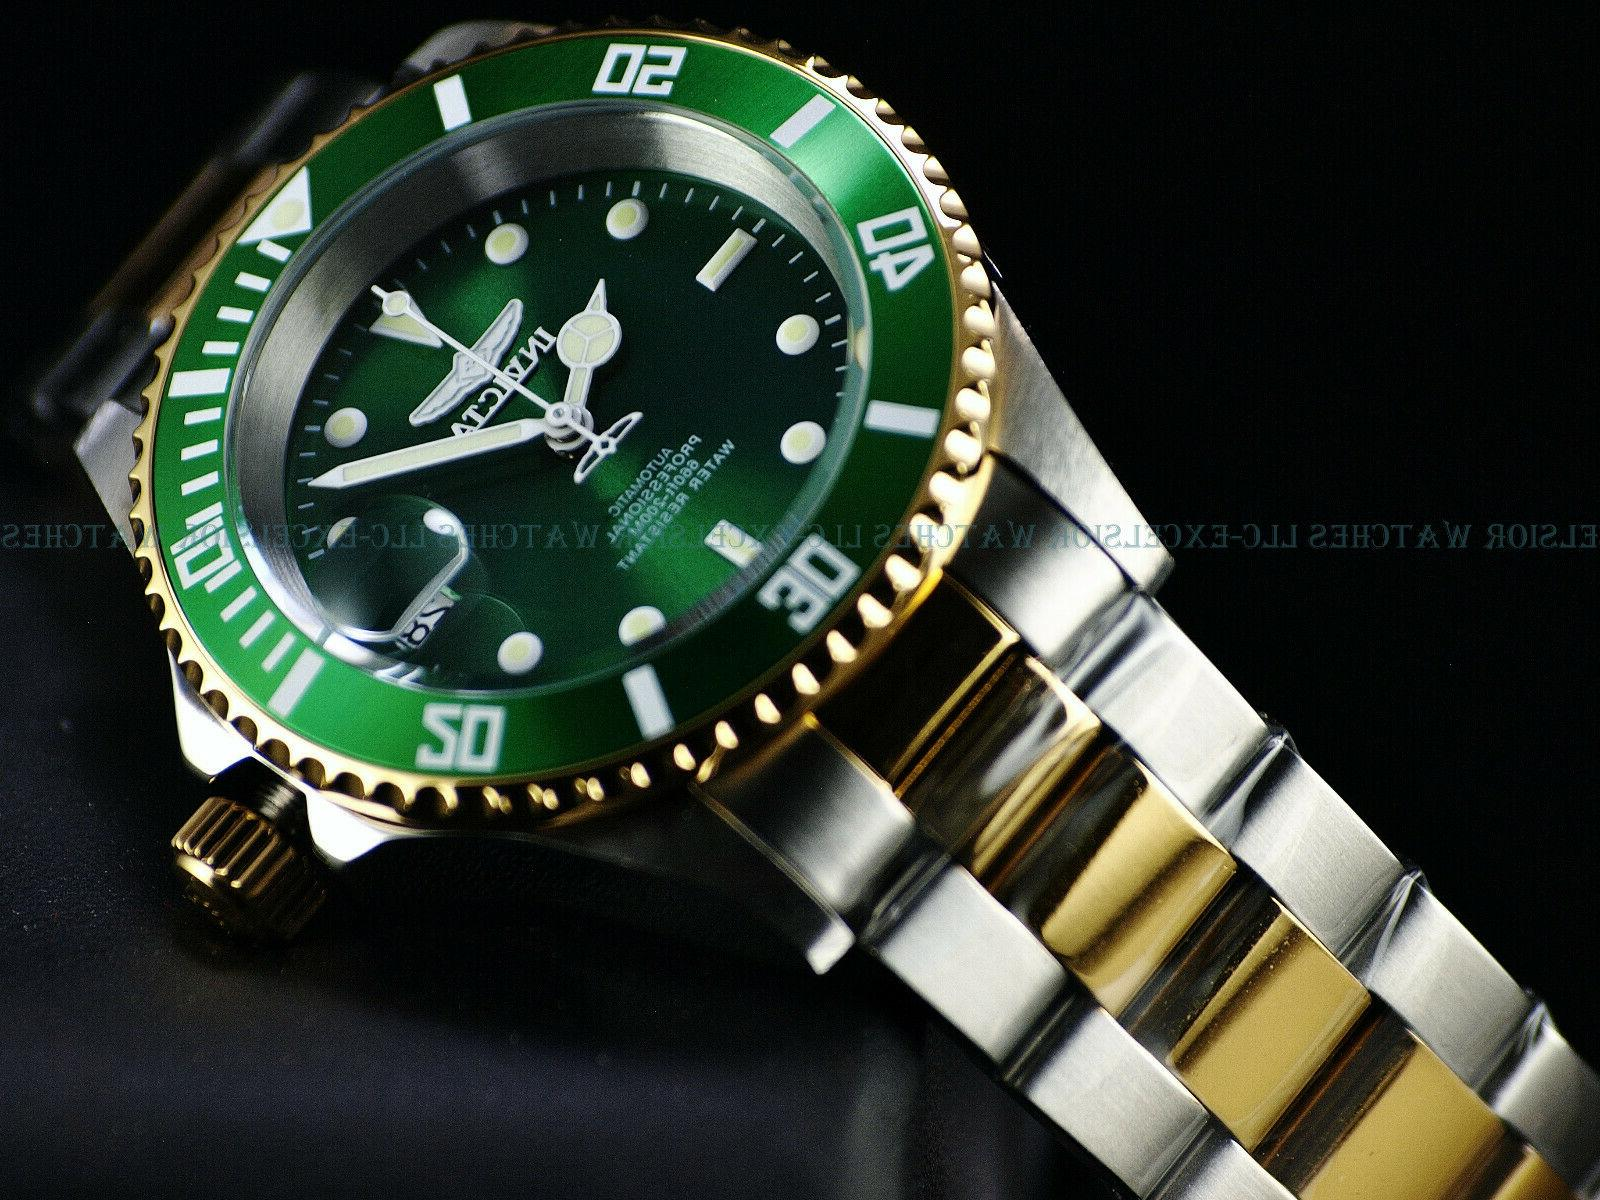 Edge PRO NH35 Automatic SS Green Watch